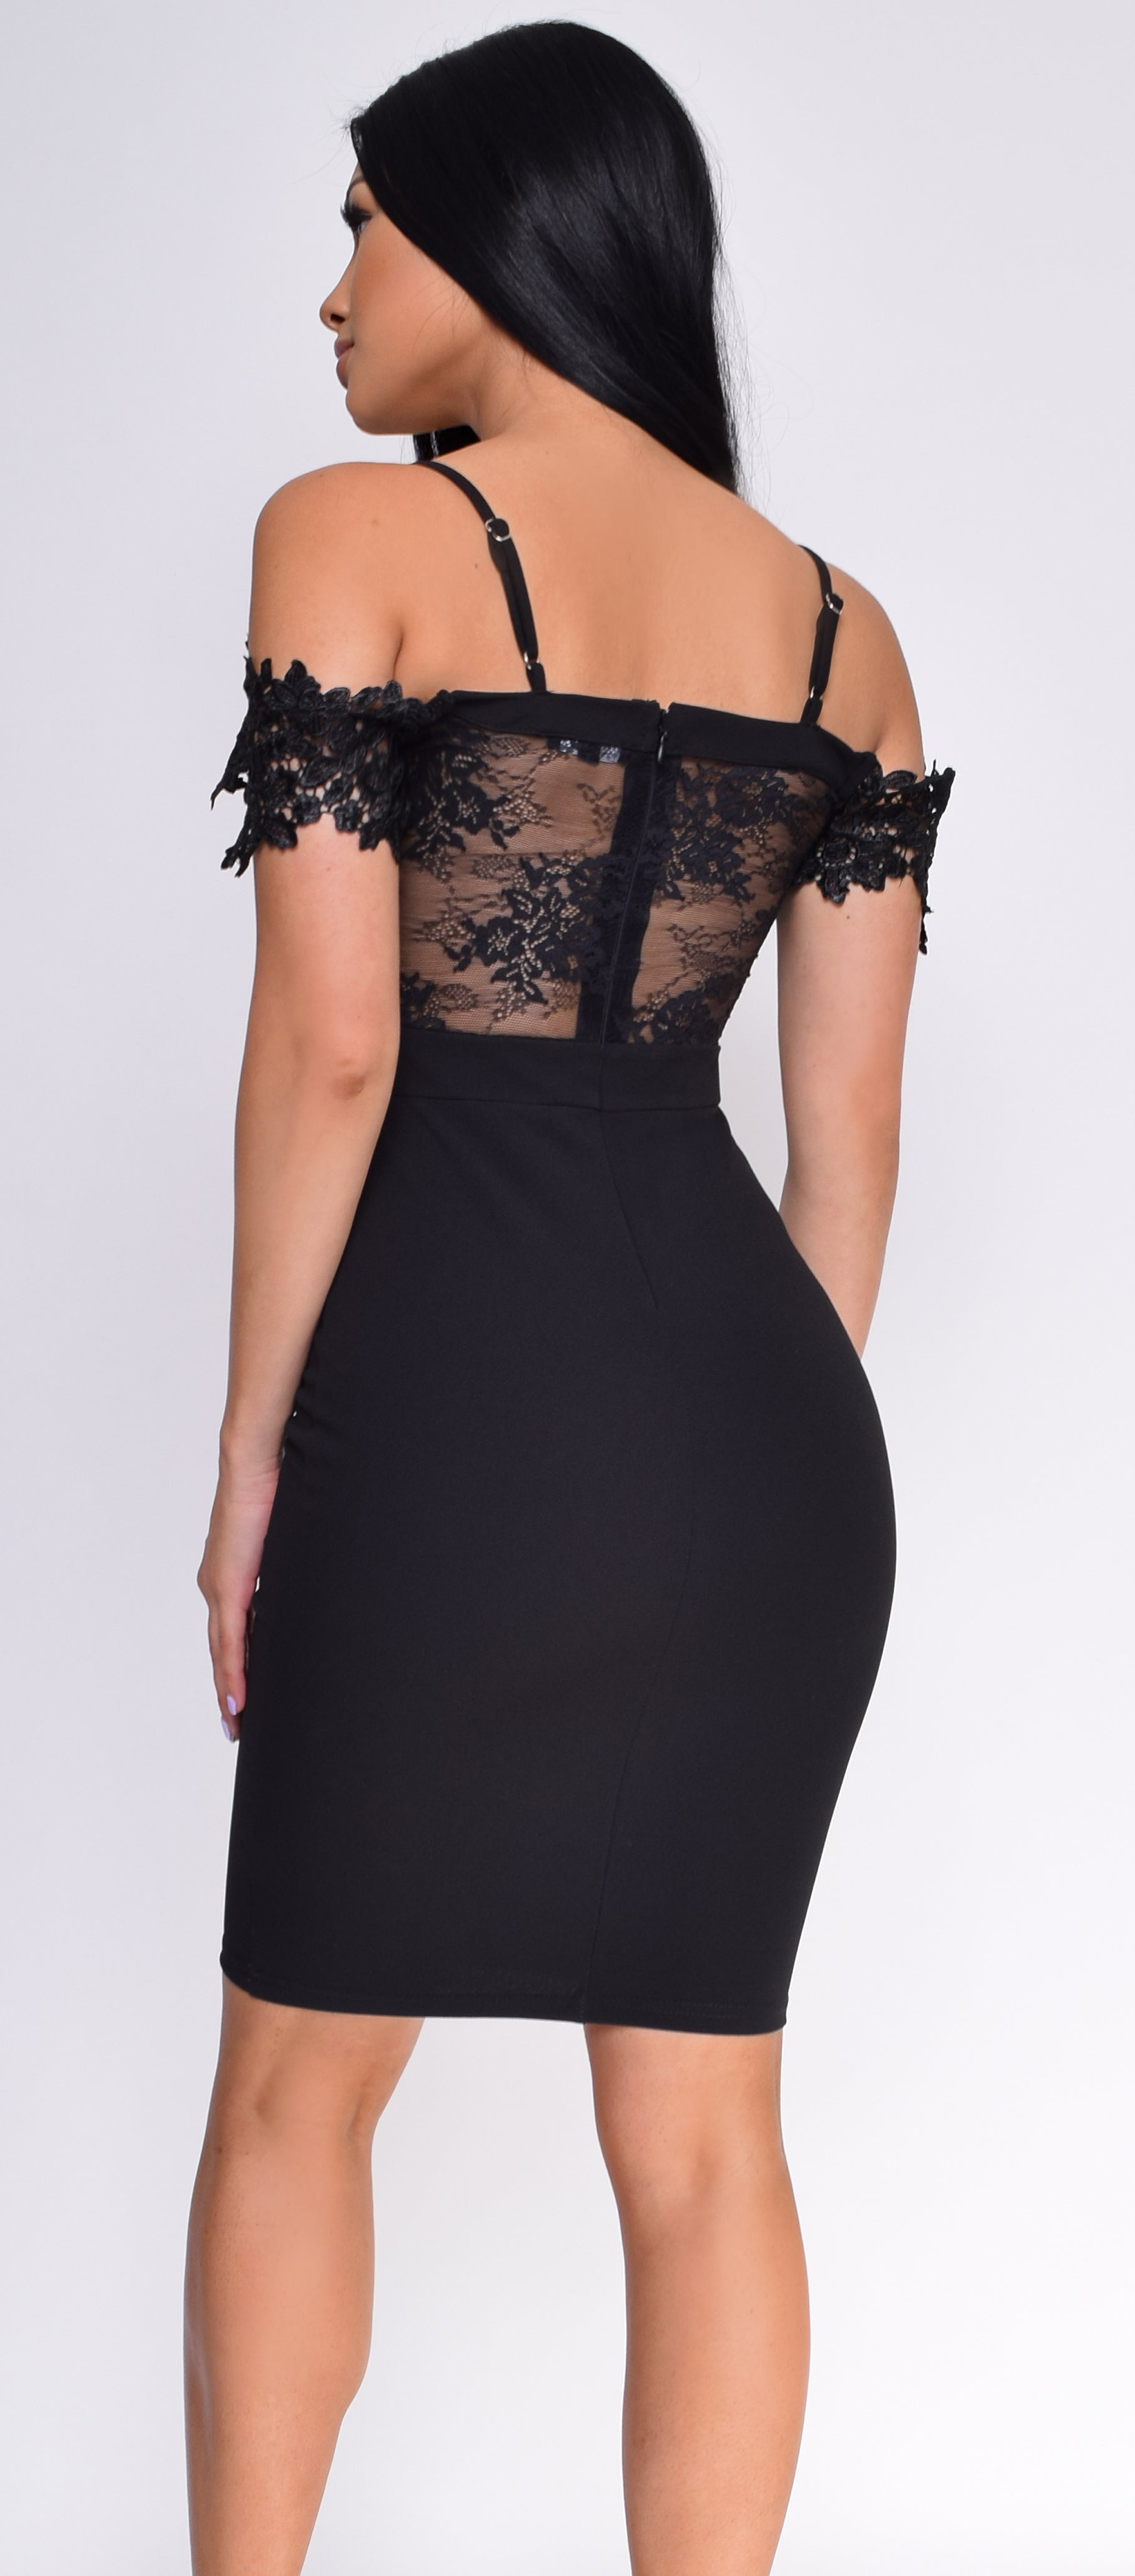 Elvina Black Floral Lace Plunge Off Shoulder Dress - Emprada